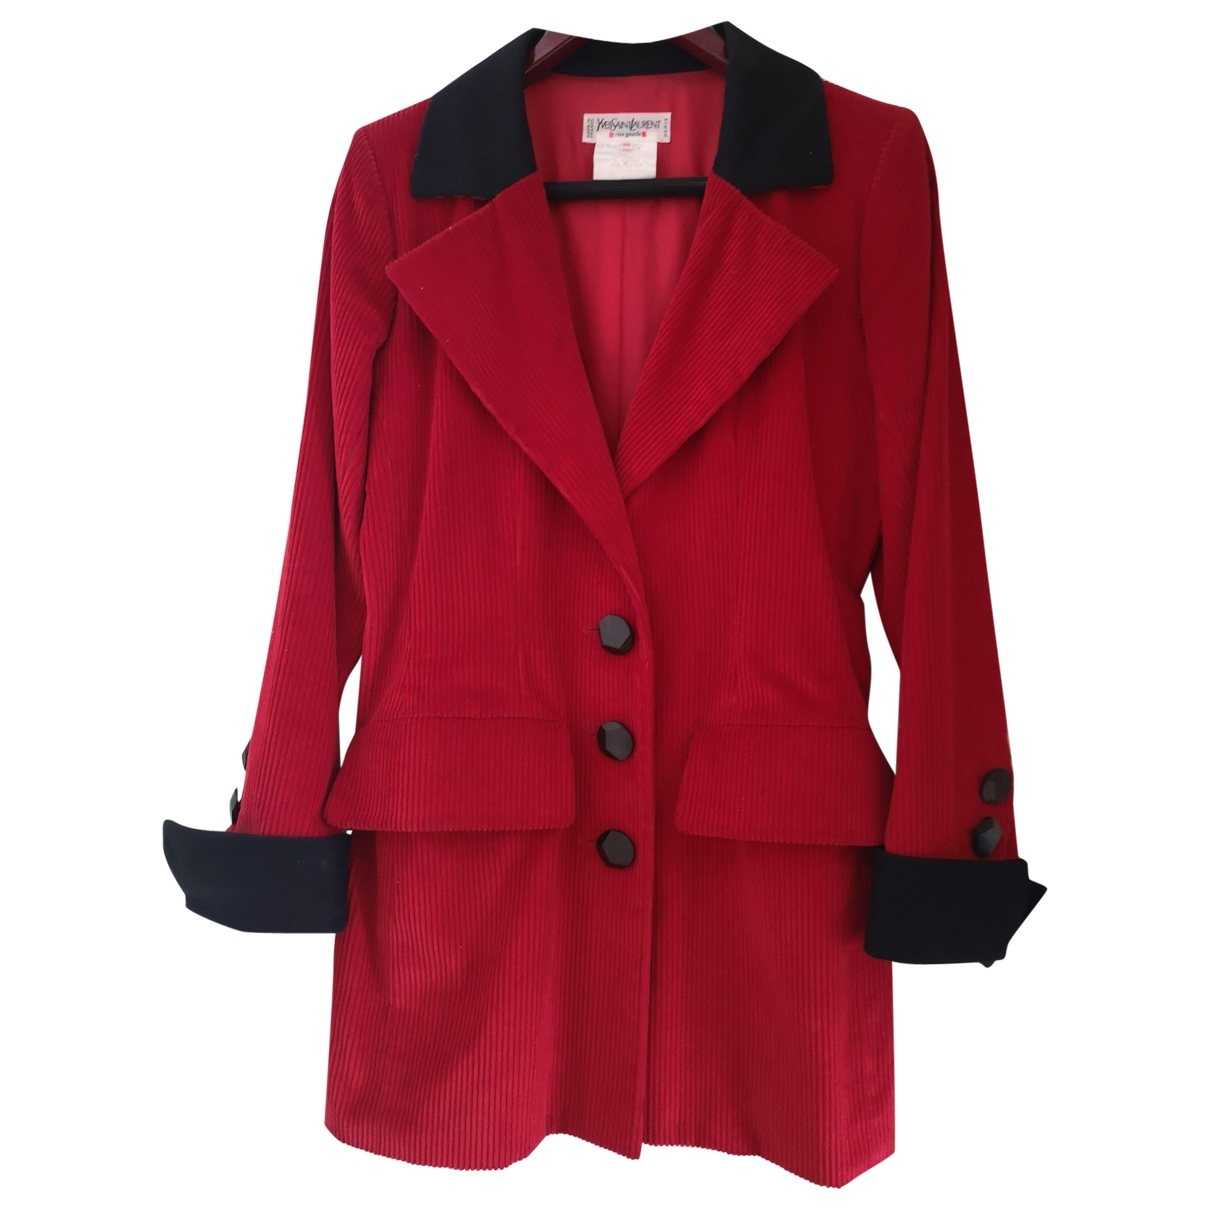 Yves Saint Laurent \N Jacke in  Rot Samt